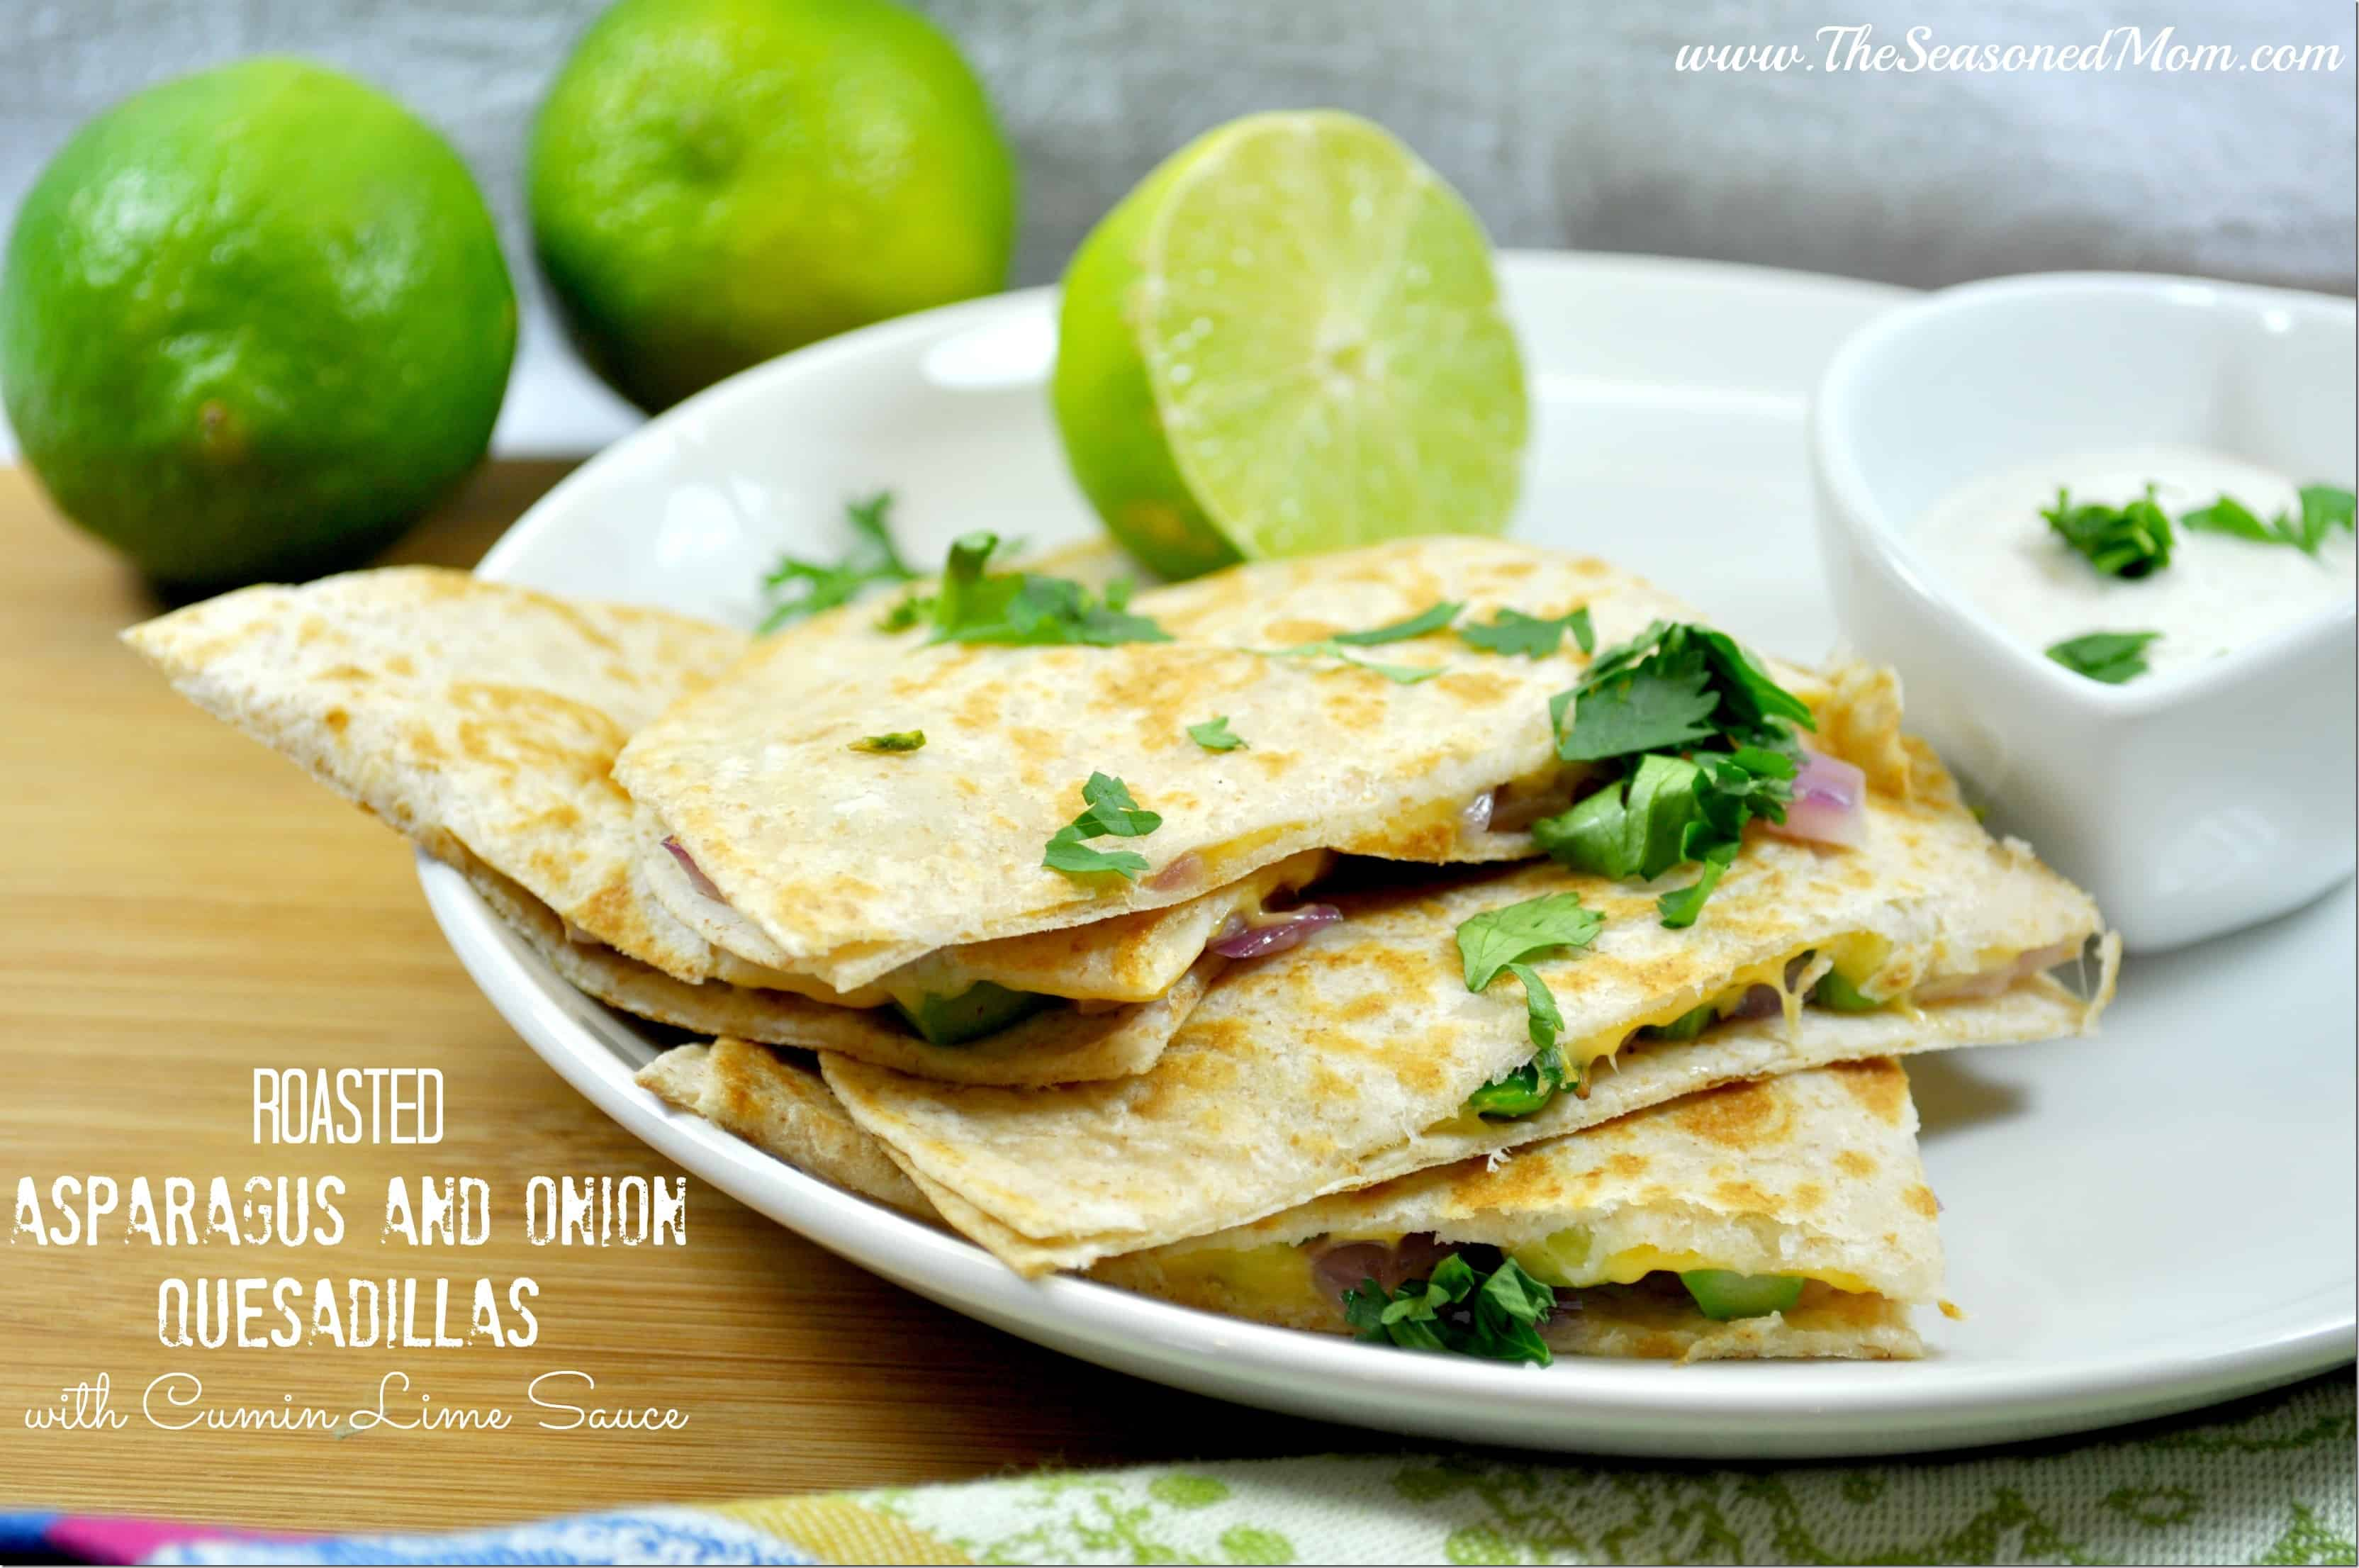 15 Quick-Fix Meals: All Ready in Less Than 30 Minutes! - The Seasoned ...